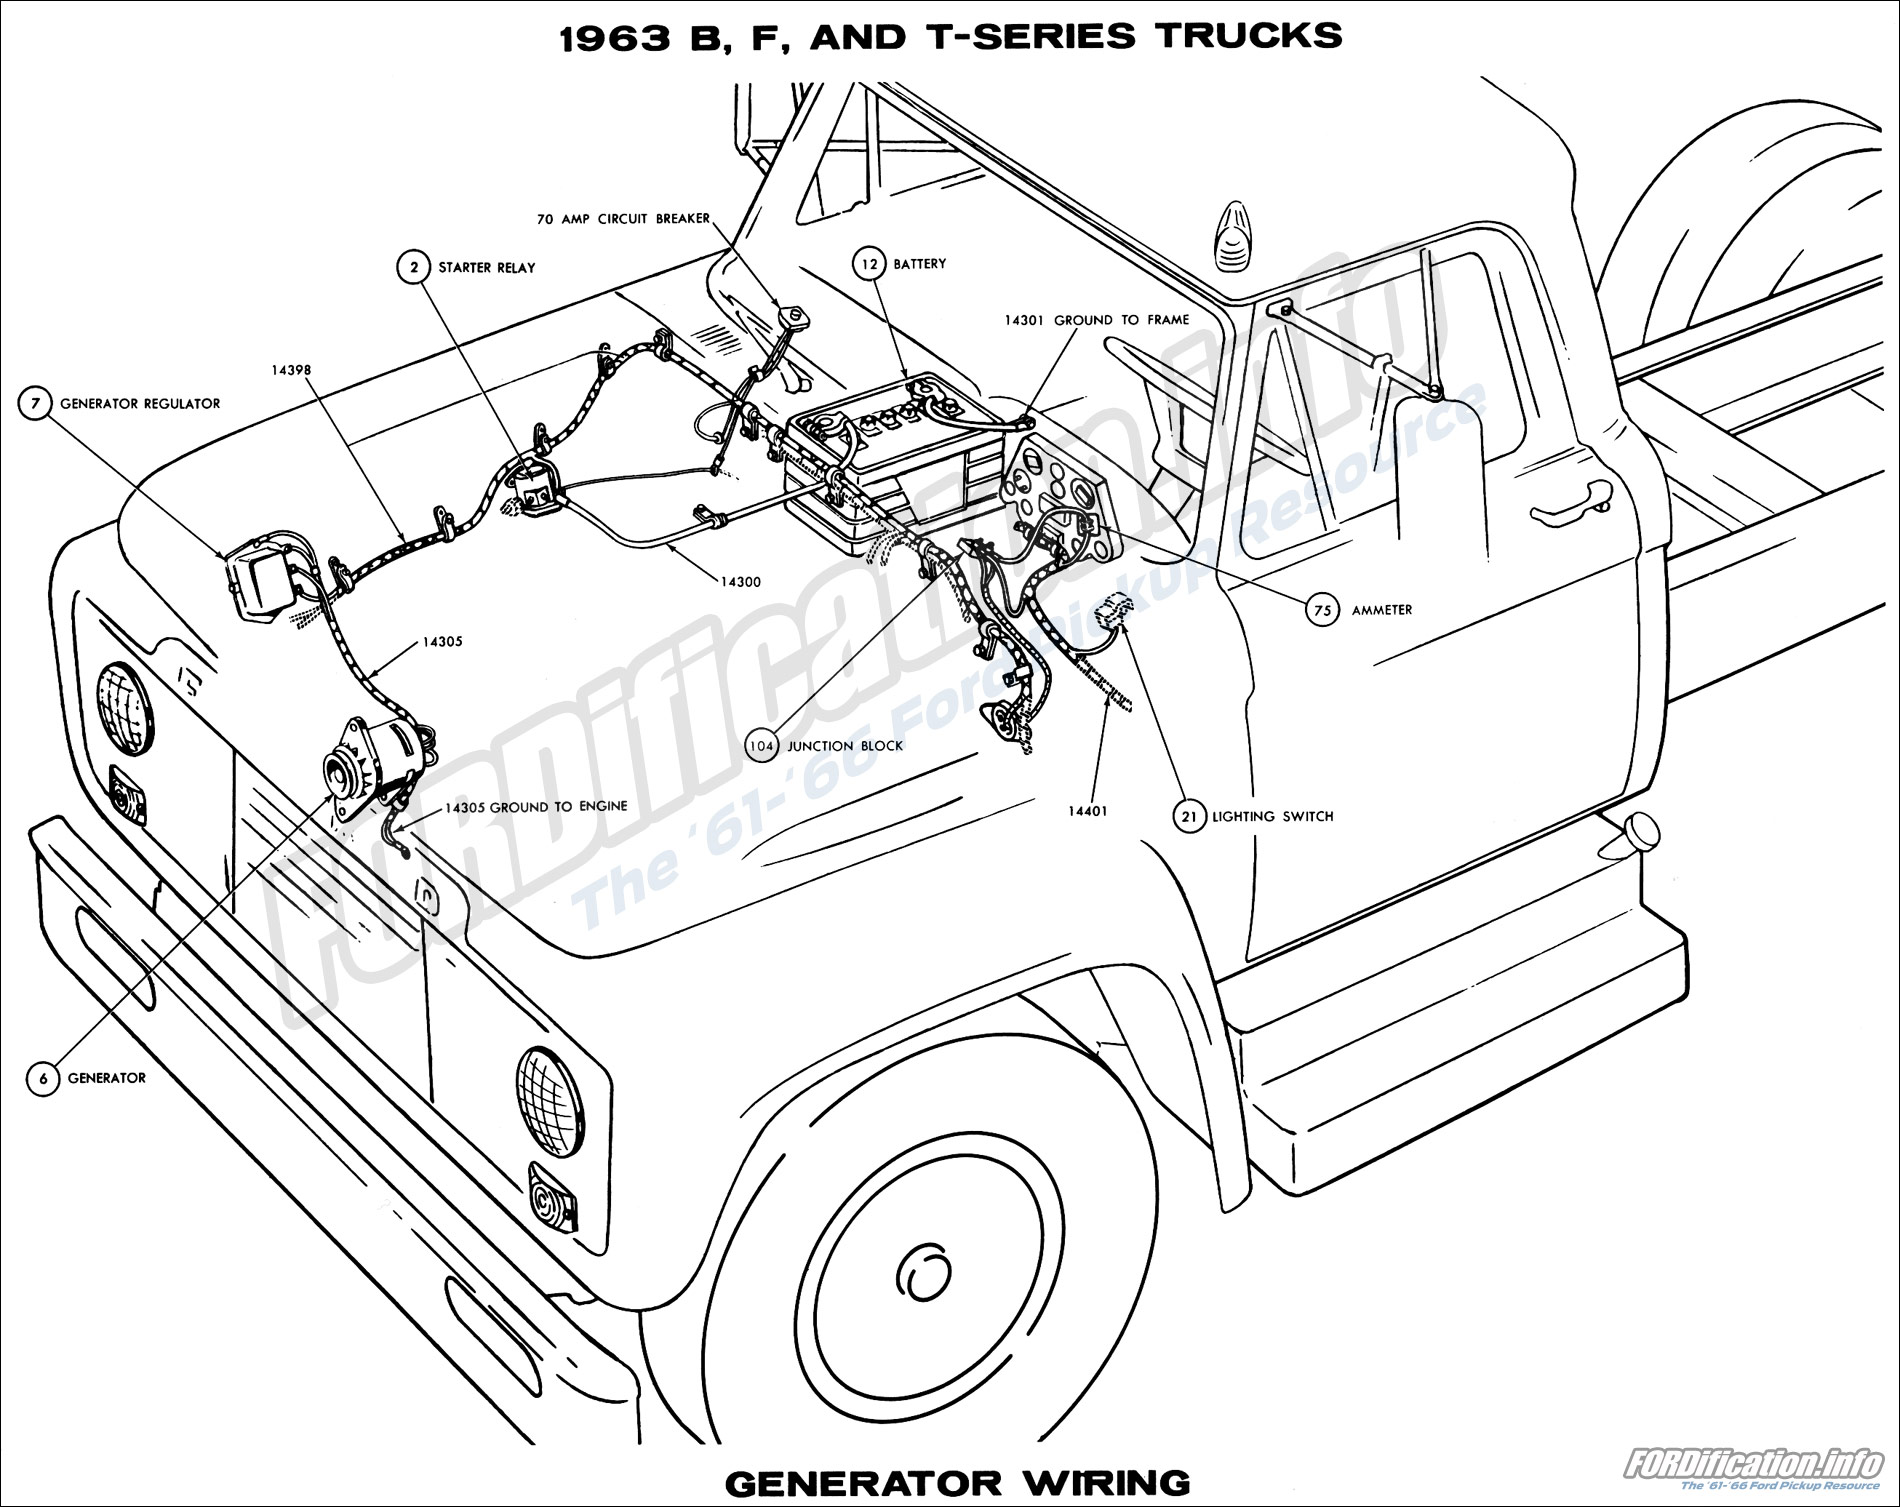 1963 Ford F100 Wiring Diagram : 29 Wiring Diagram Images